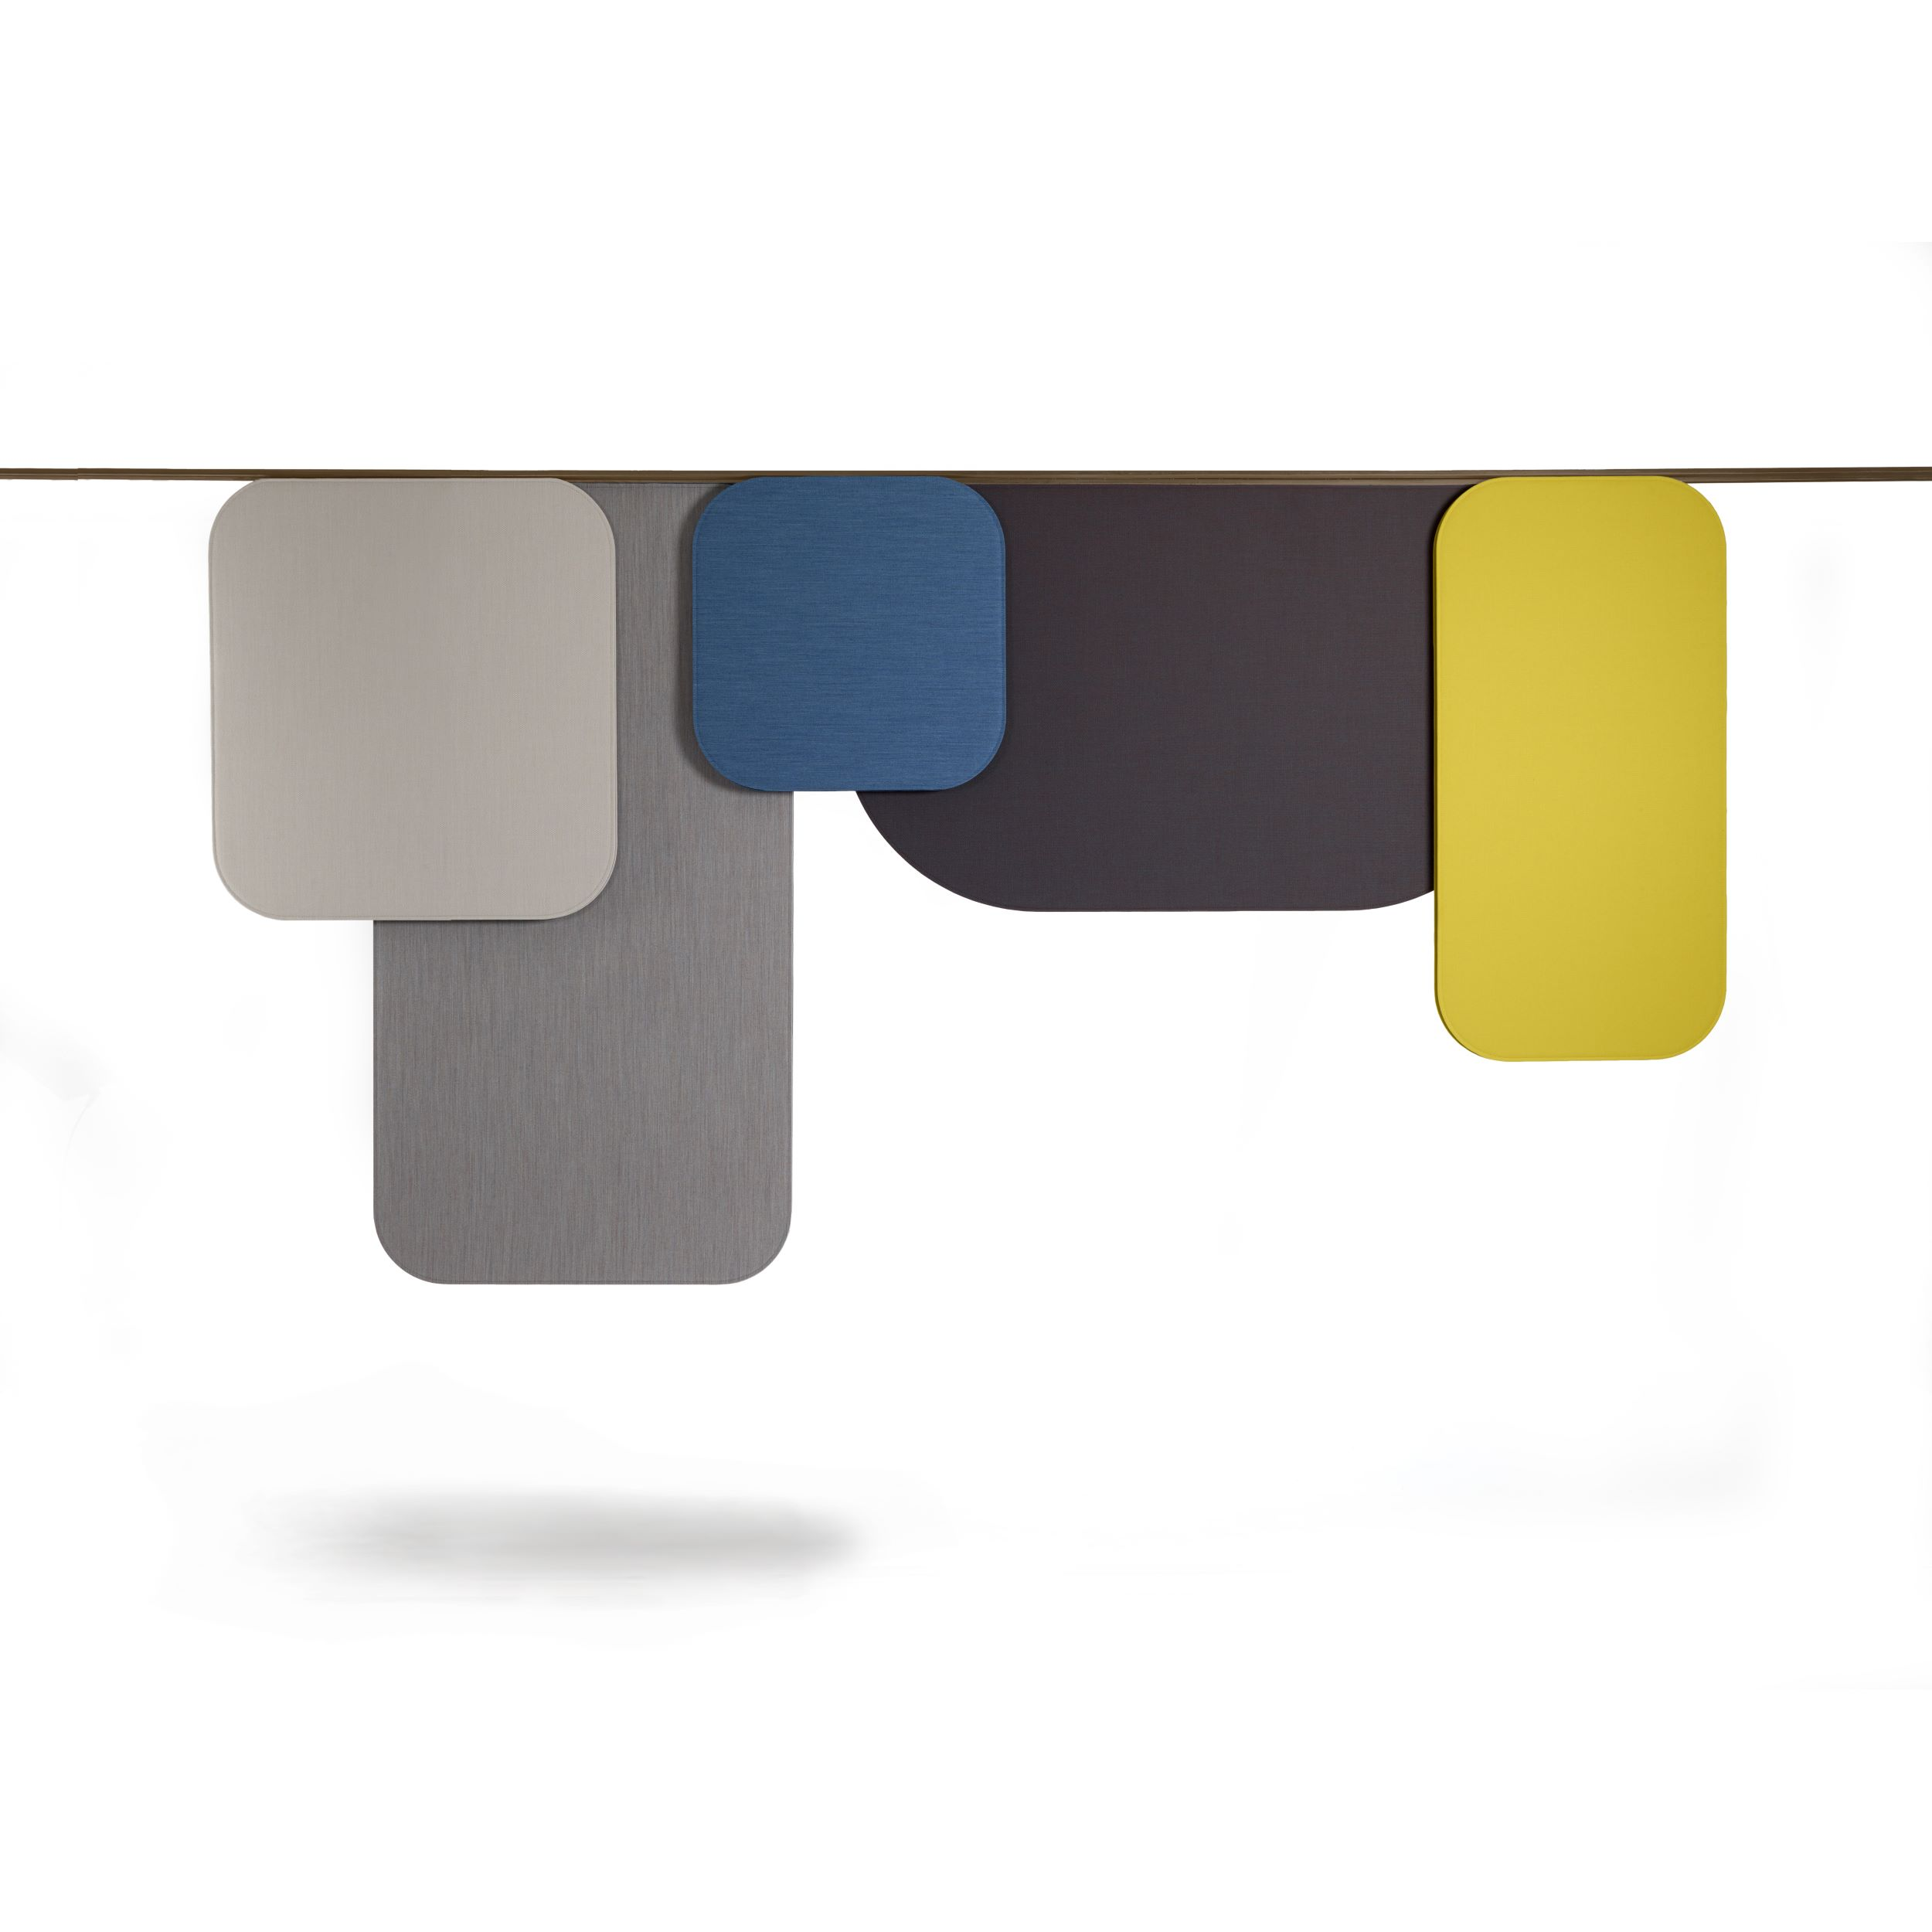 Notes Acoustic panel Sound absorbing Luca Nichetto Offecct